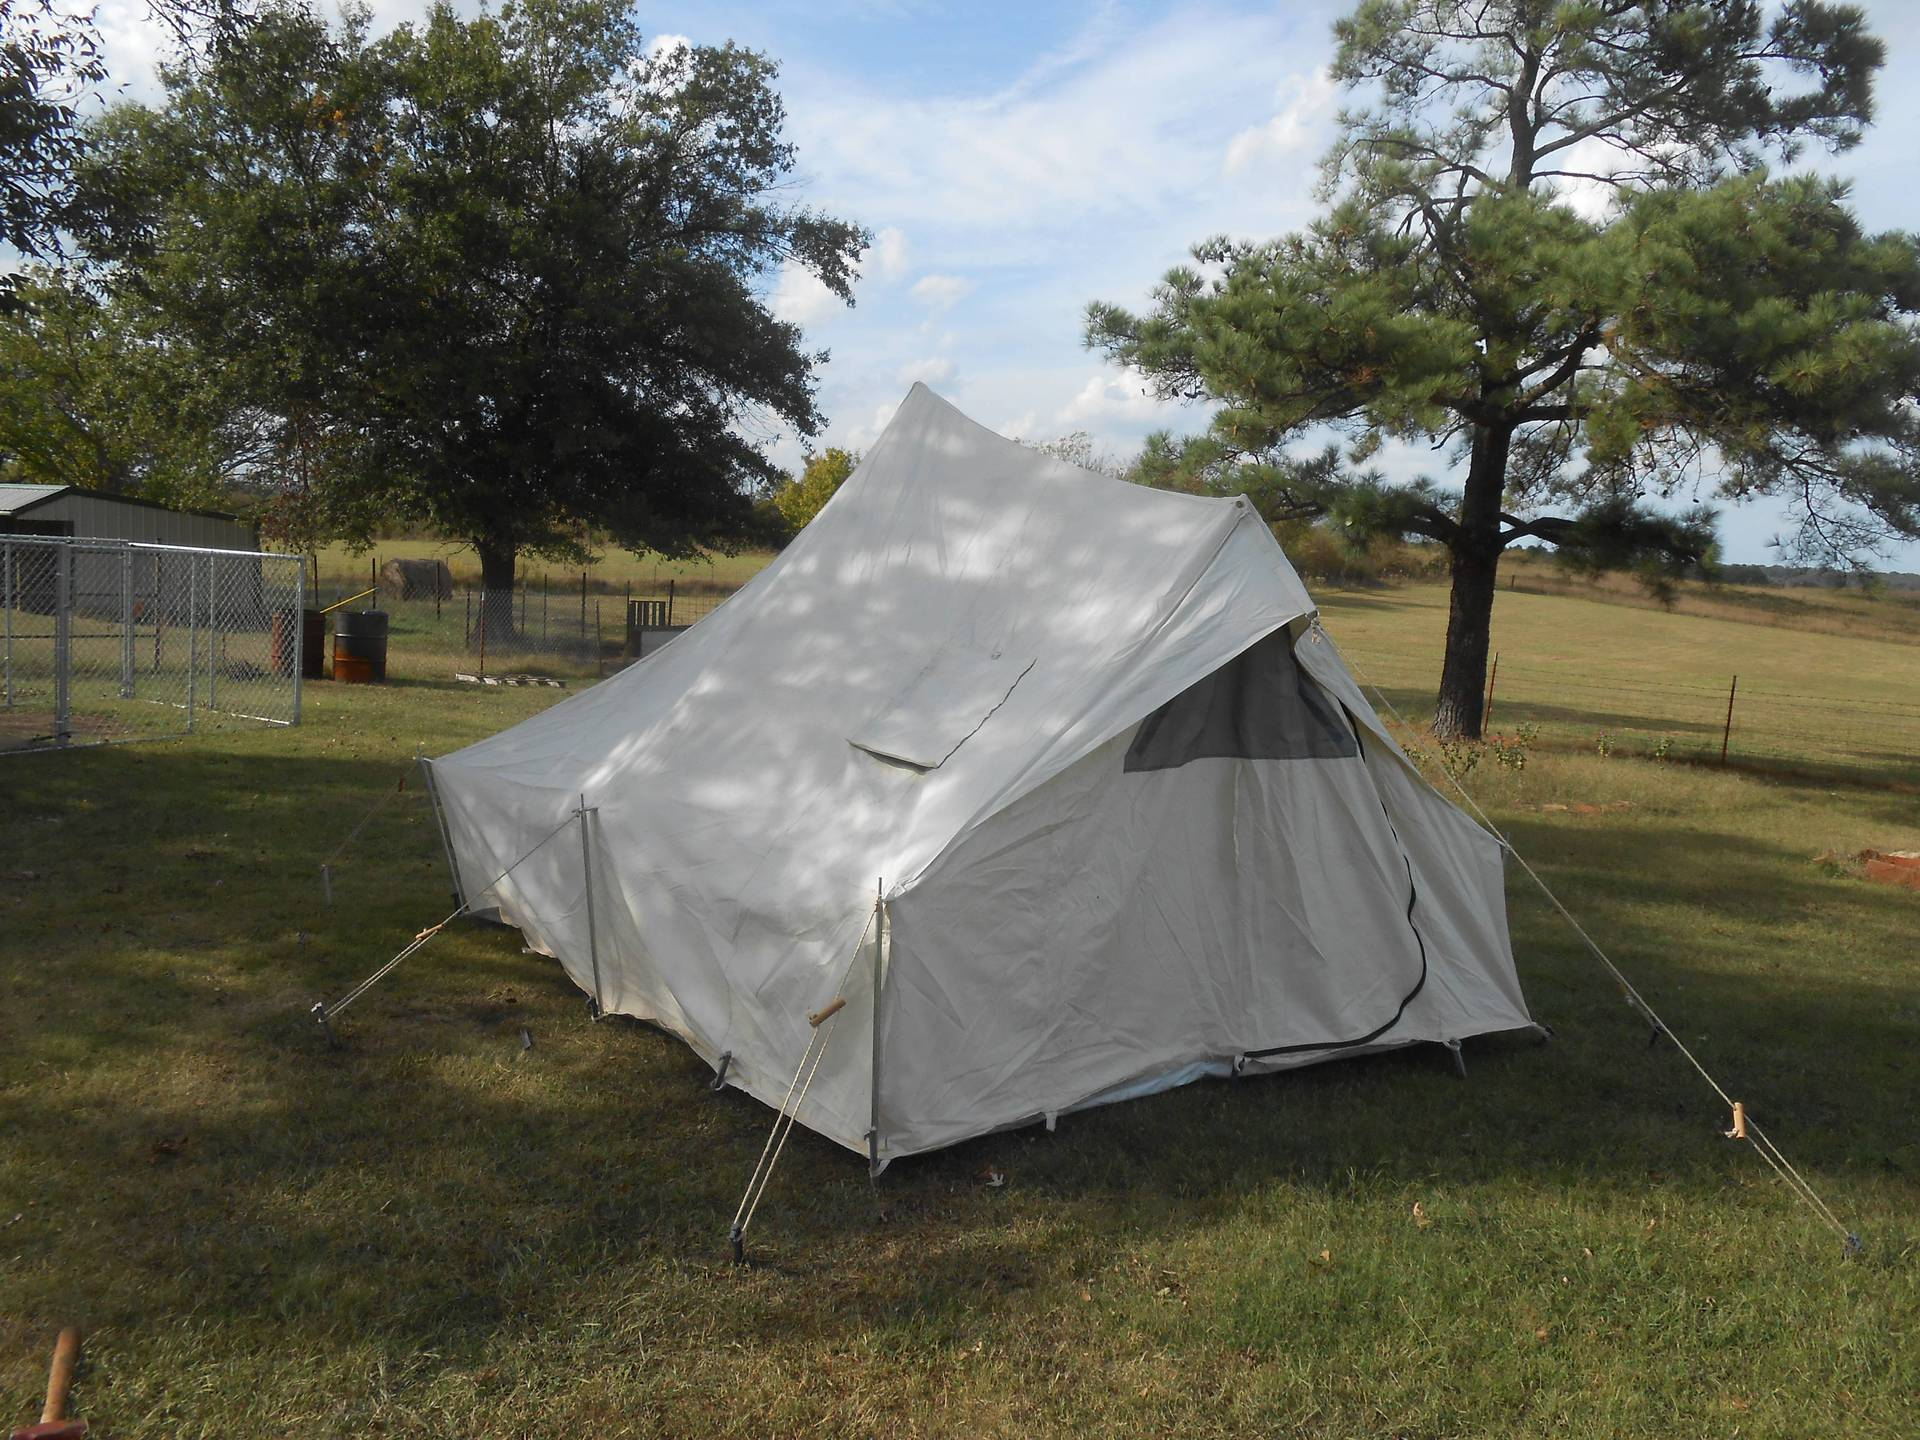 click to view fullsize image & Mountain Spike tent Reliable tent co w/Stove